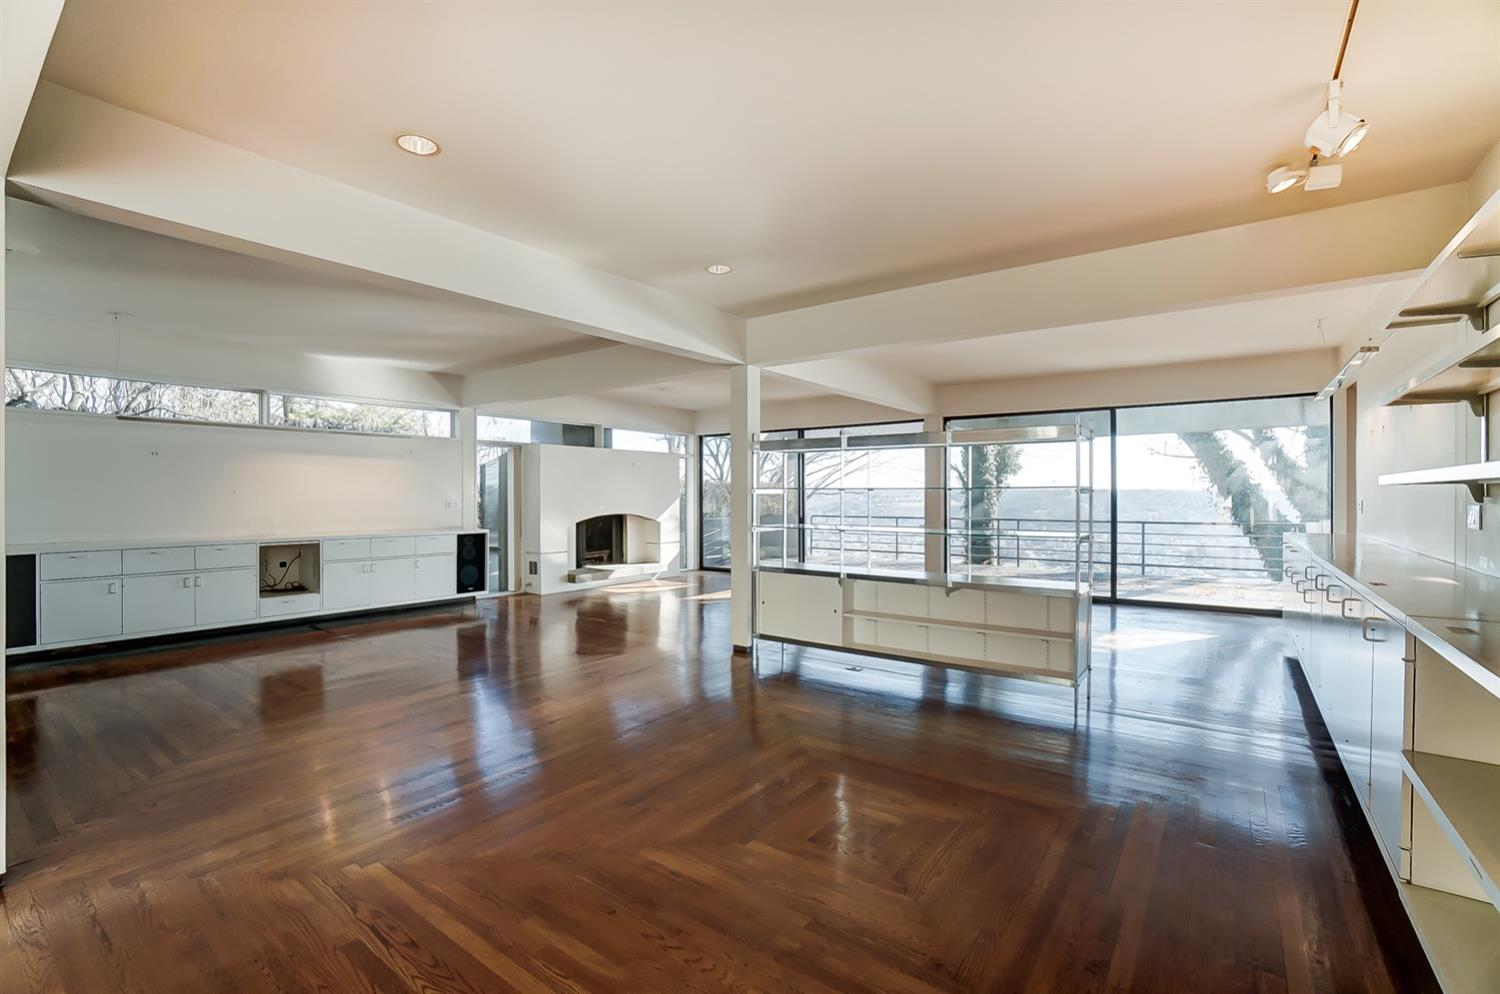 Expansive multi-purpose living area. Original plans note areas as music, living and game.